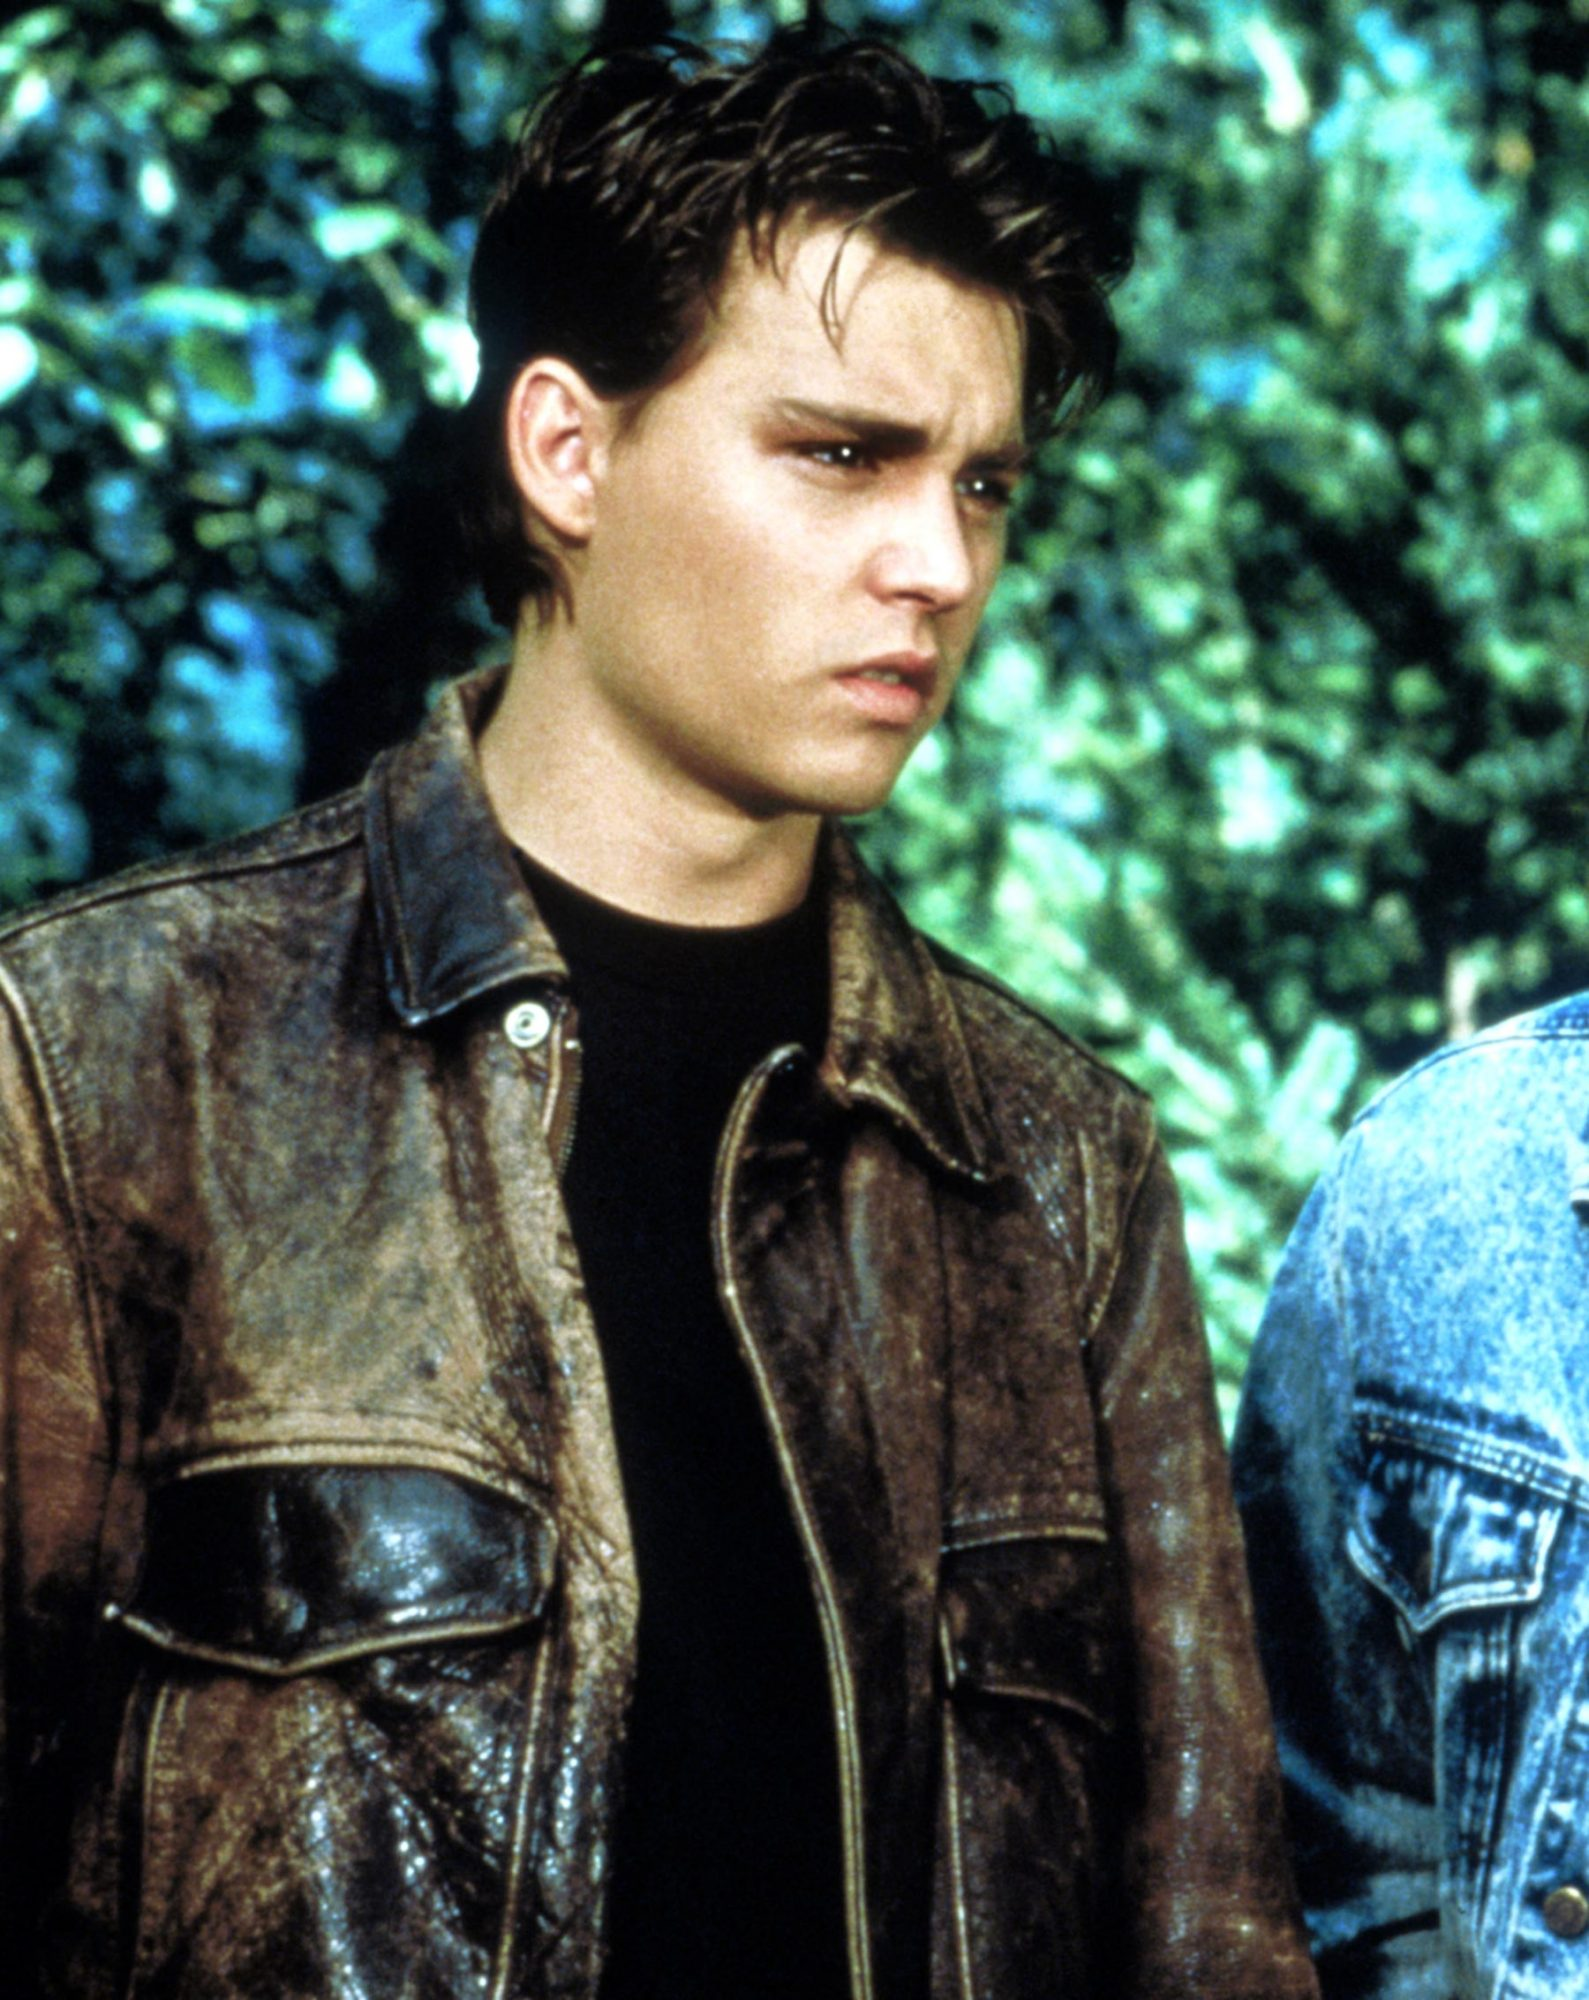 21 JUMP STREET, Johnny Depp, Peter DeLuise, 1987-91, © Stephen J. Cannell Productions / Courtesy: Ev